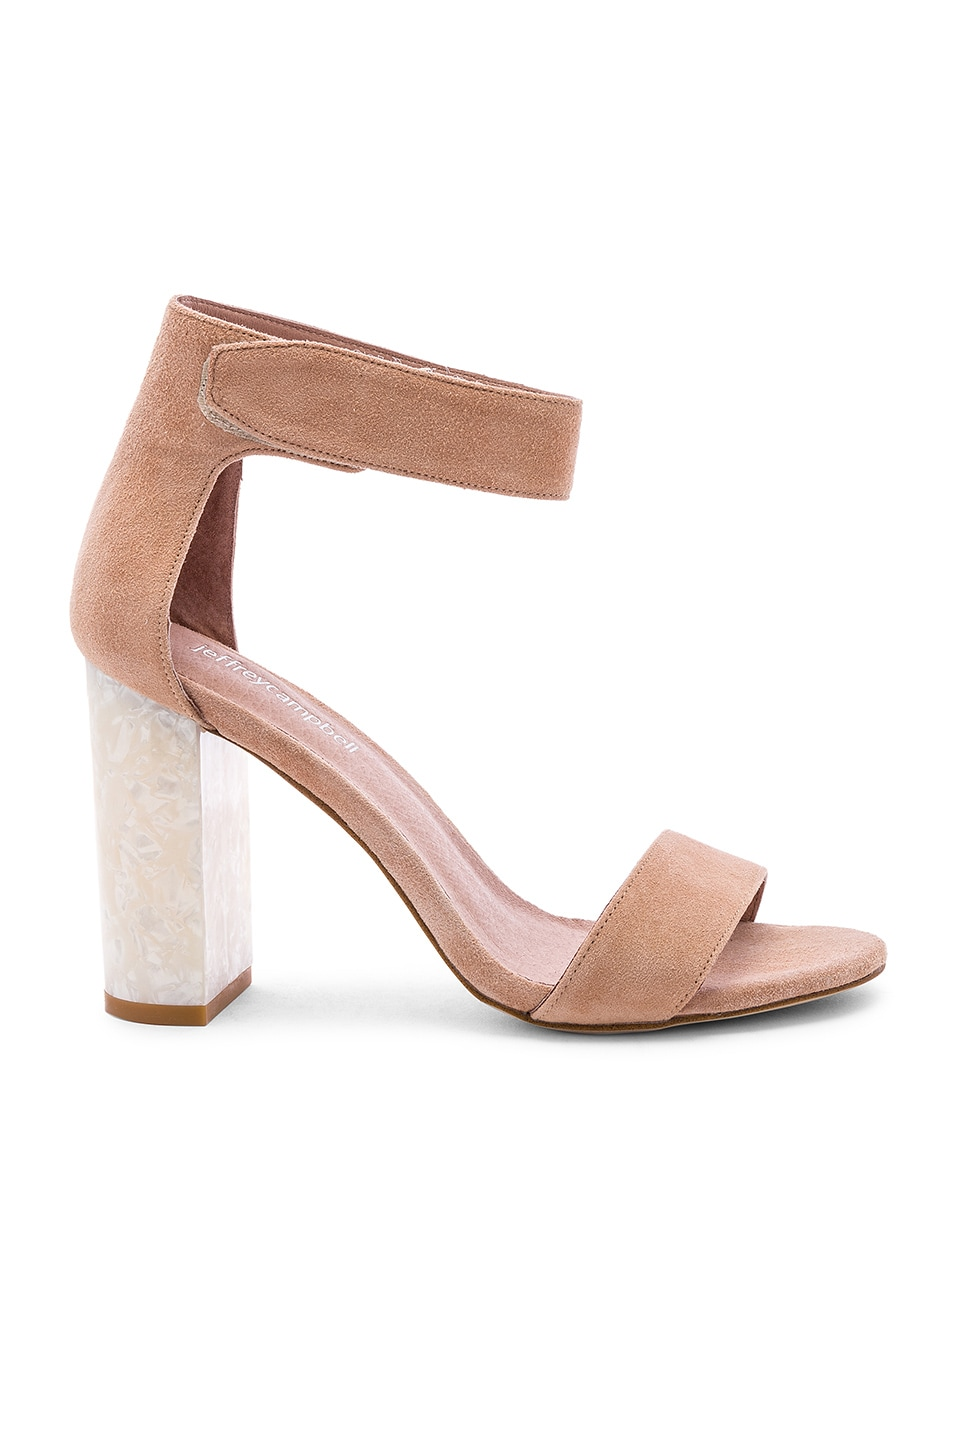 Jeffrey Campbell Lindsay Heel in Blush Suede